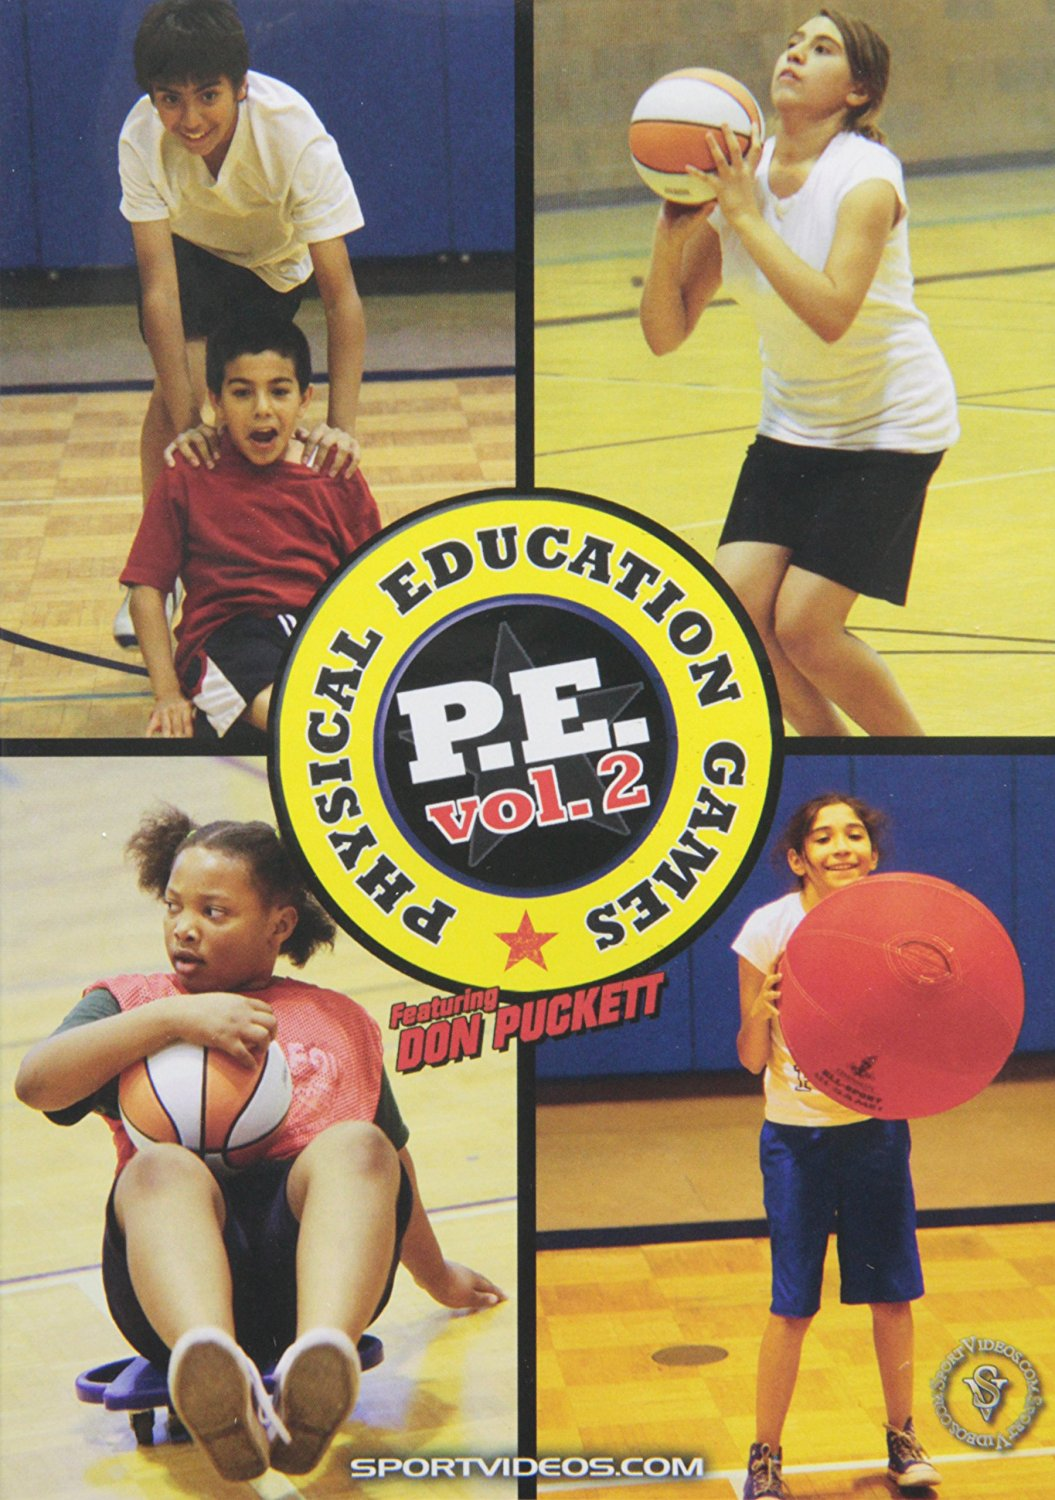 Physical Education Games Vol 2 DVD with Coach Don Puckett